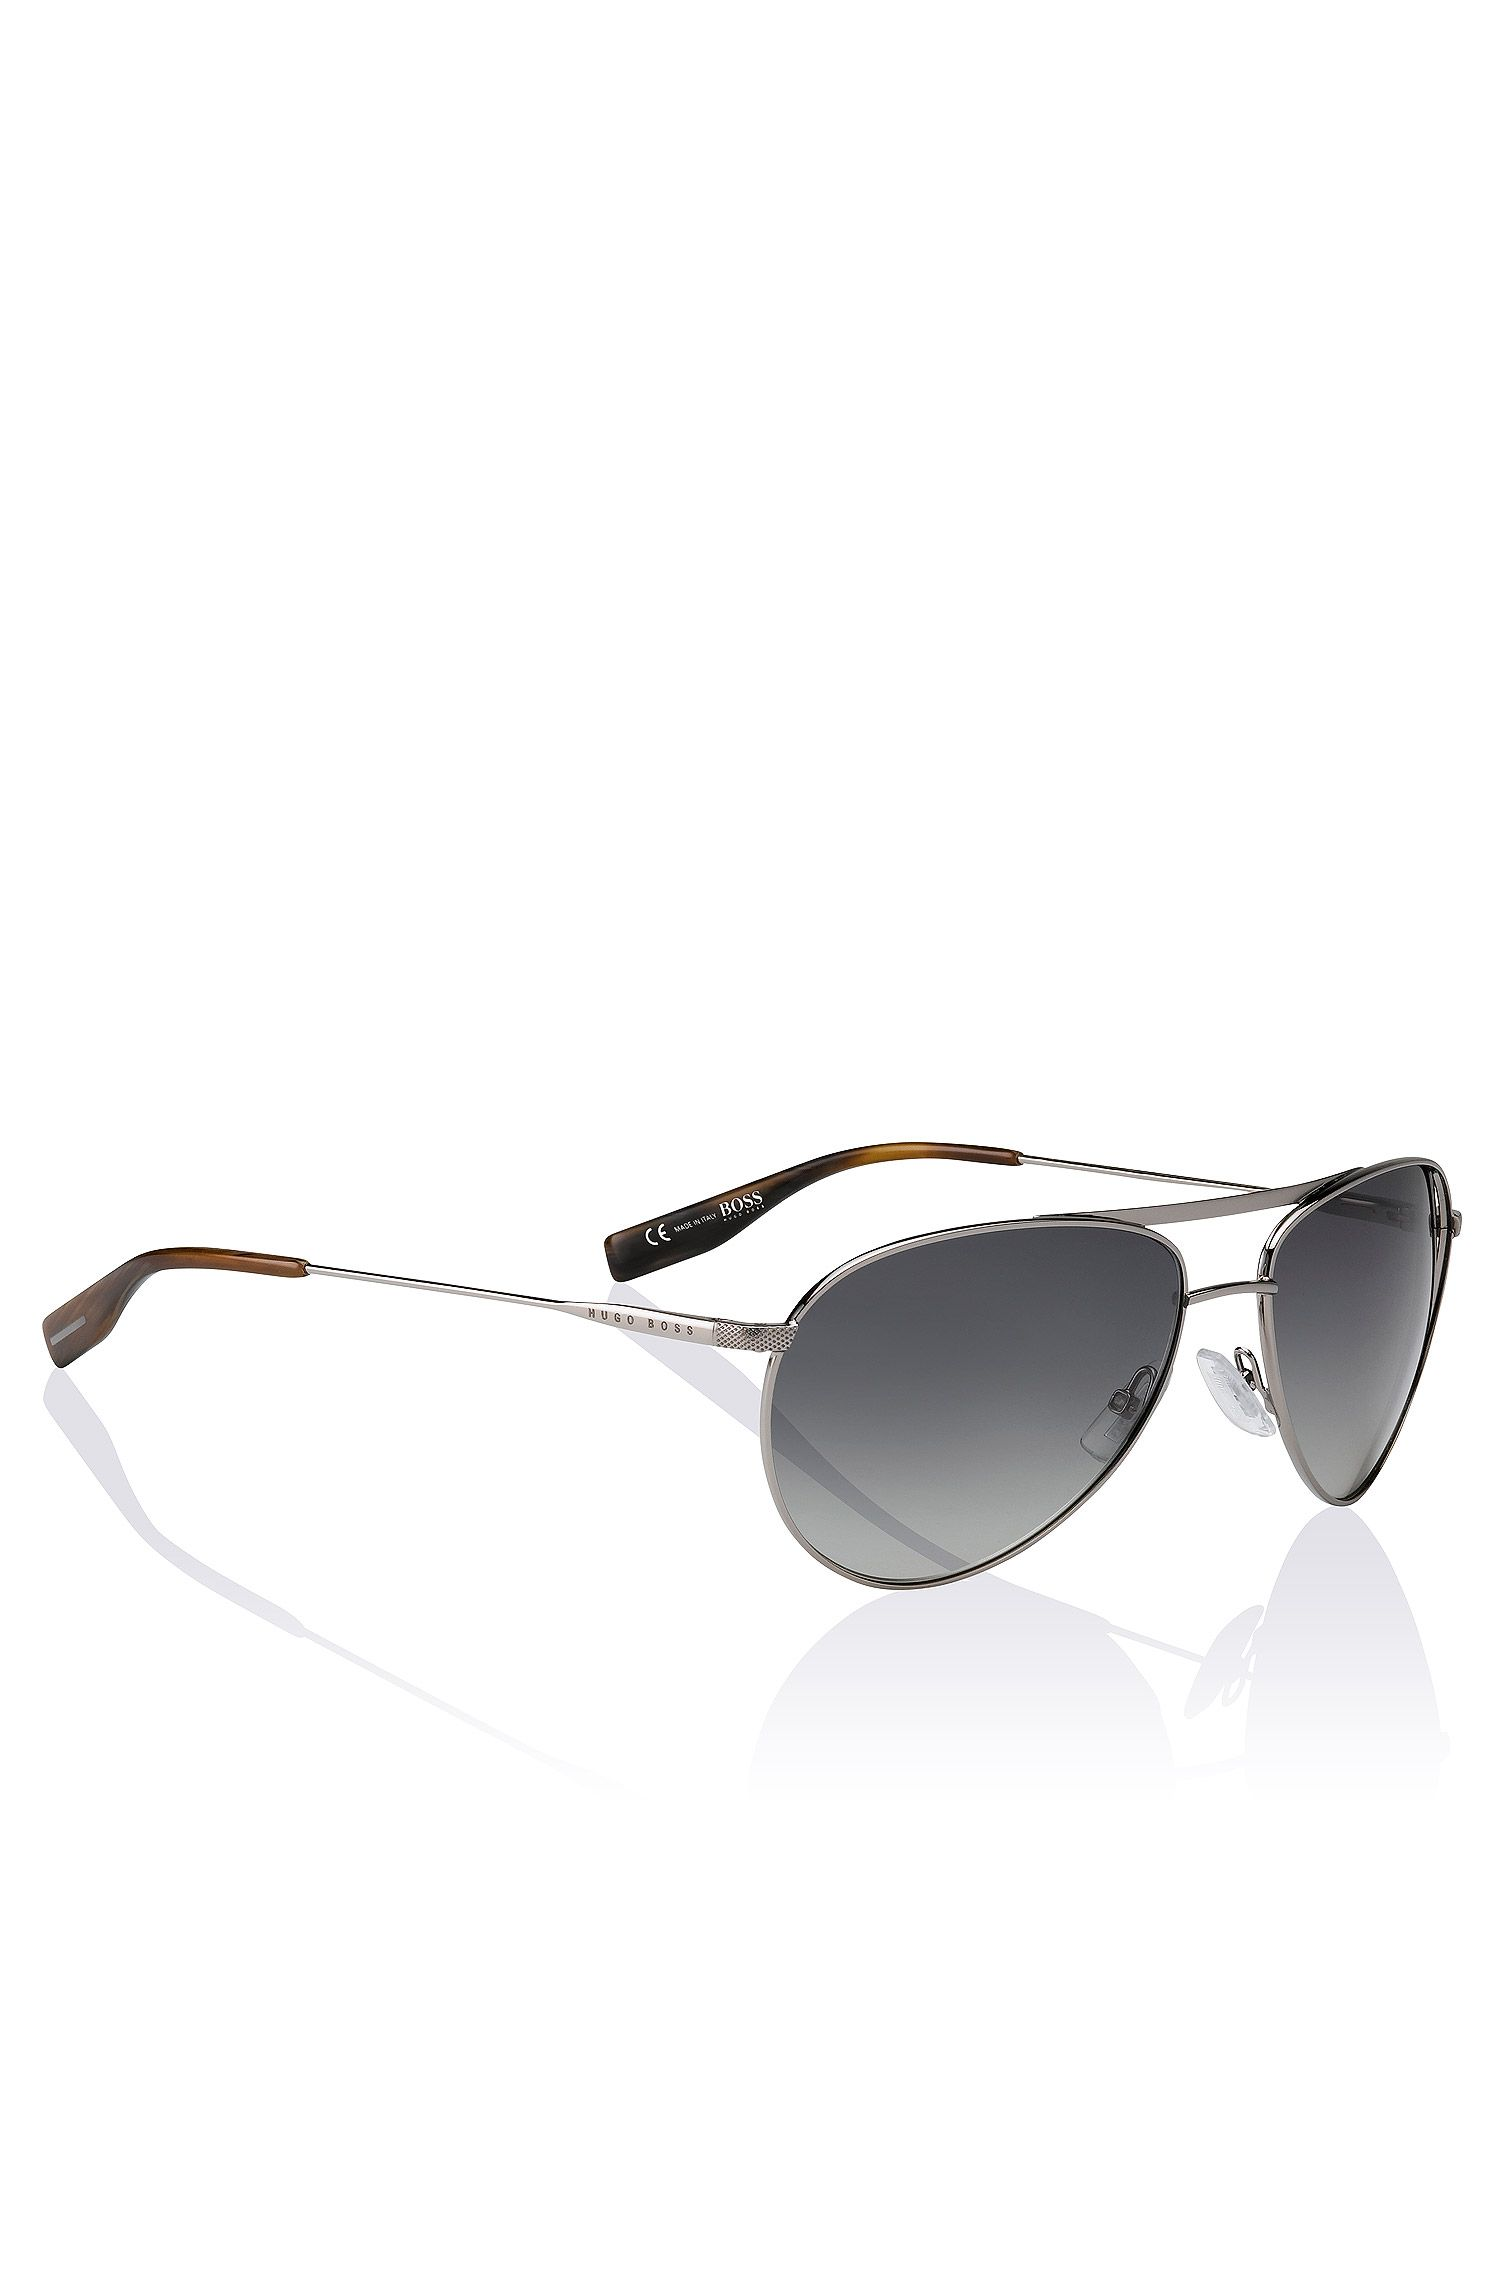 Pilot sunglasses 'BOSS 06317/S'